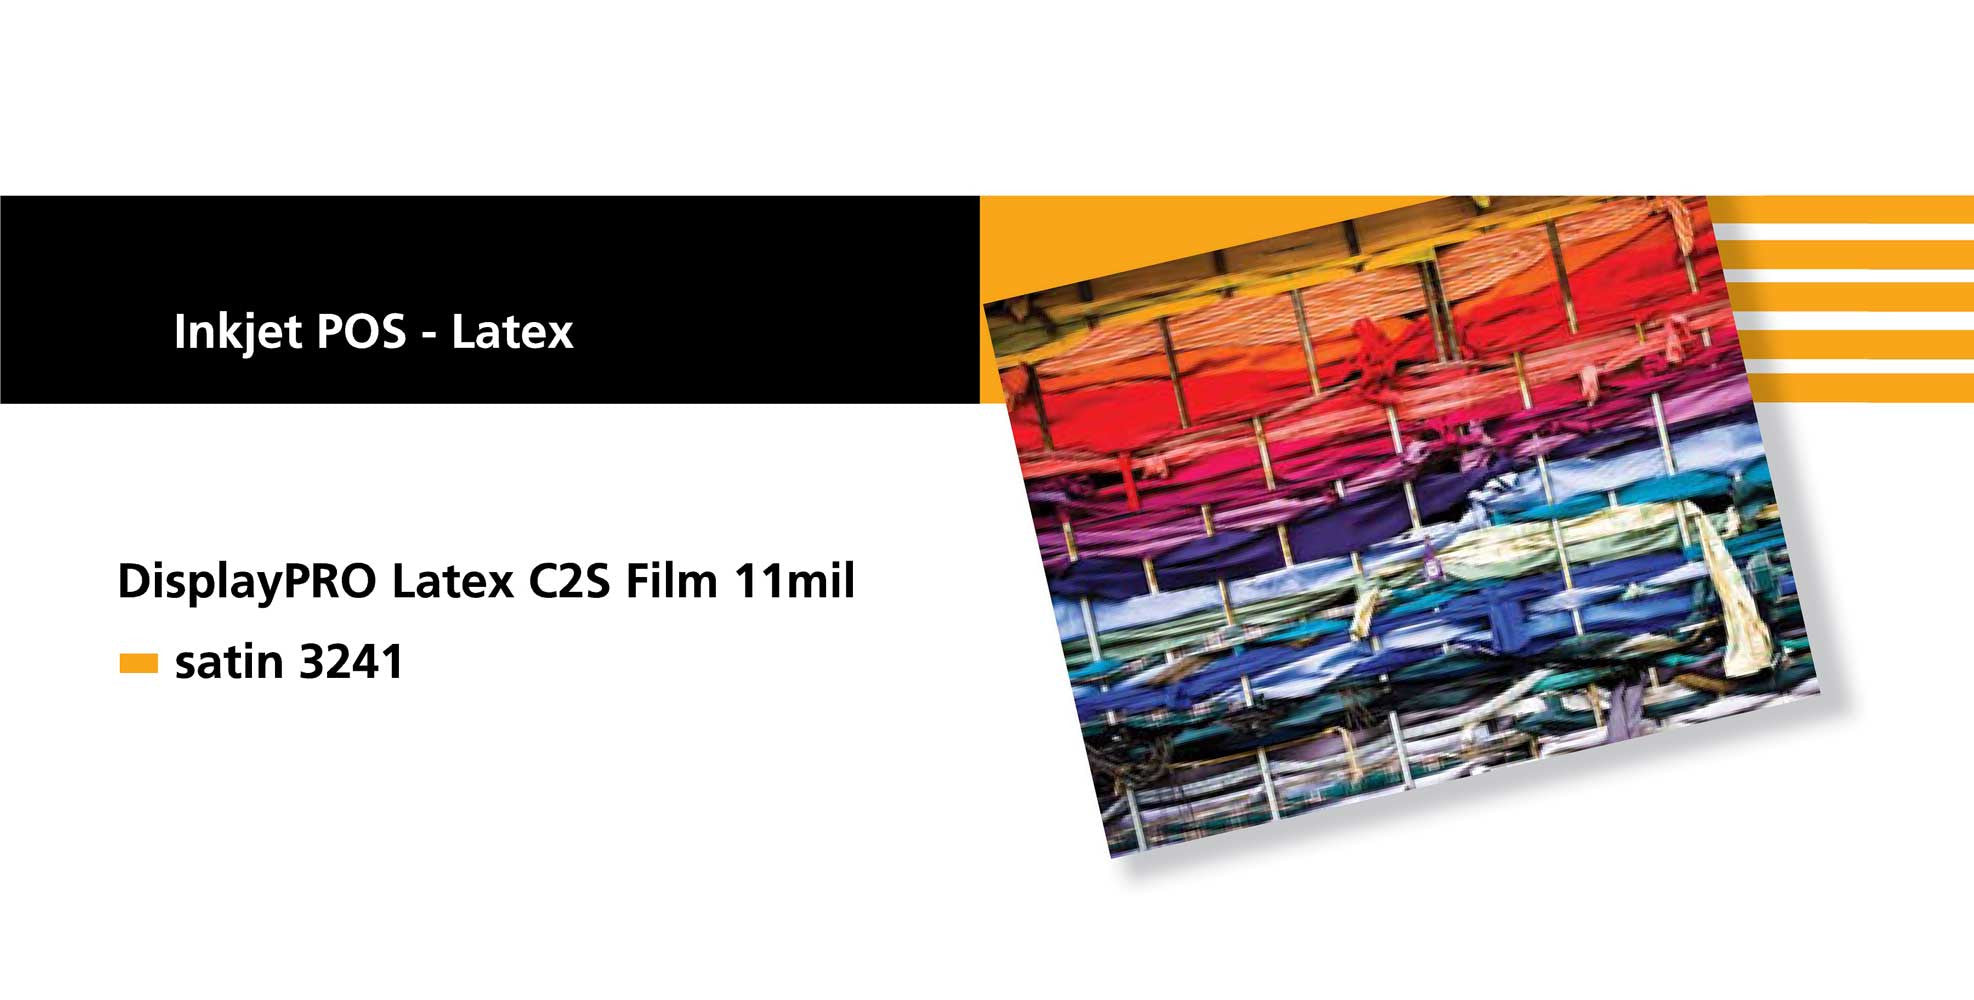 Sihl 3241 Display PRO 11 Latex C2S Film 11 mil